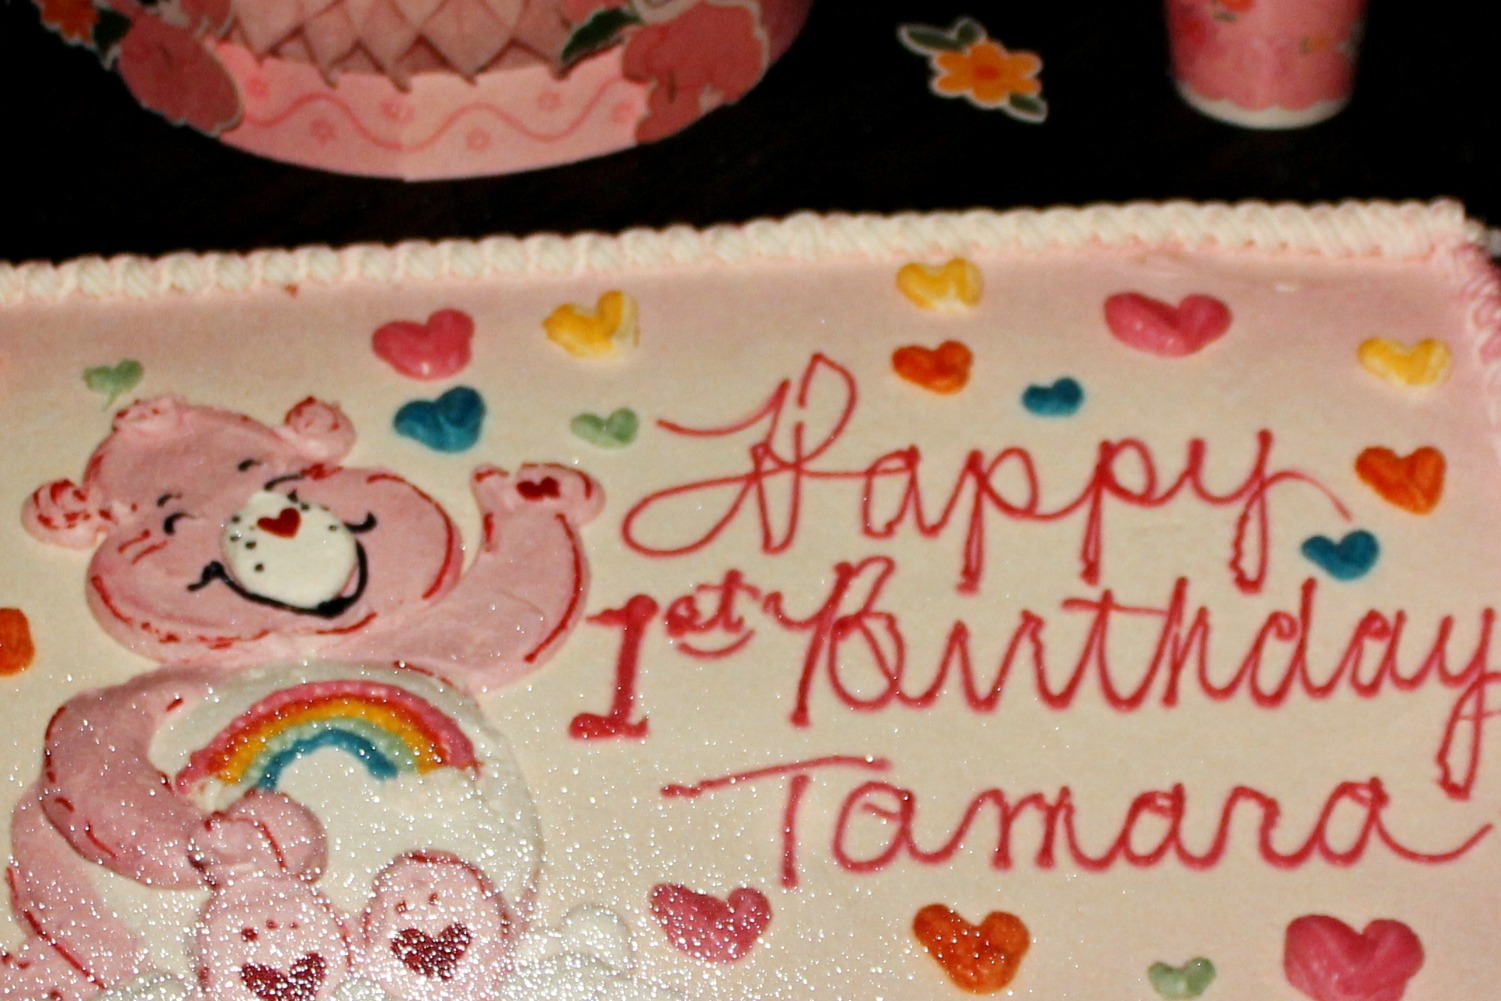 Tamara - Happy 1st Birthday Cake